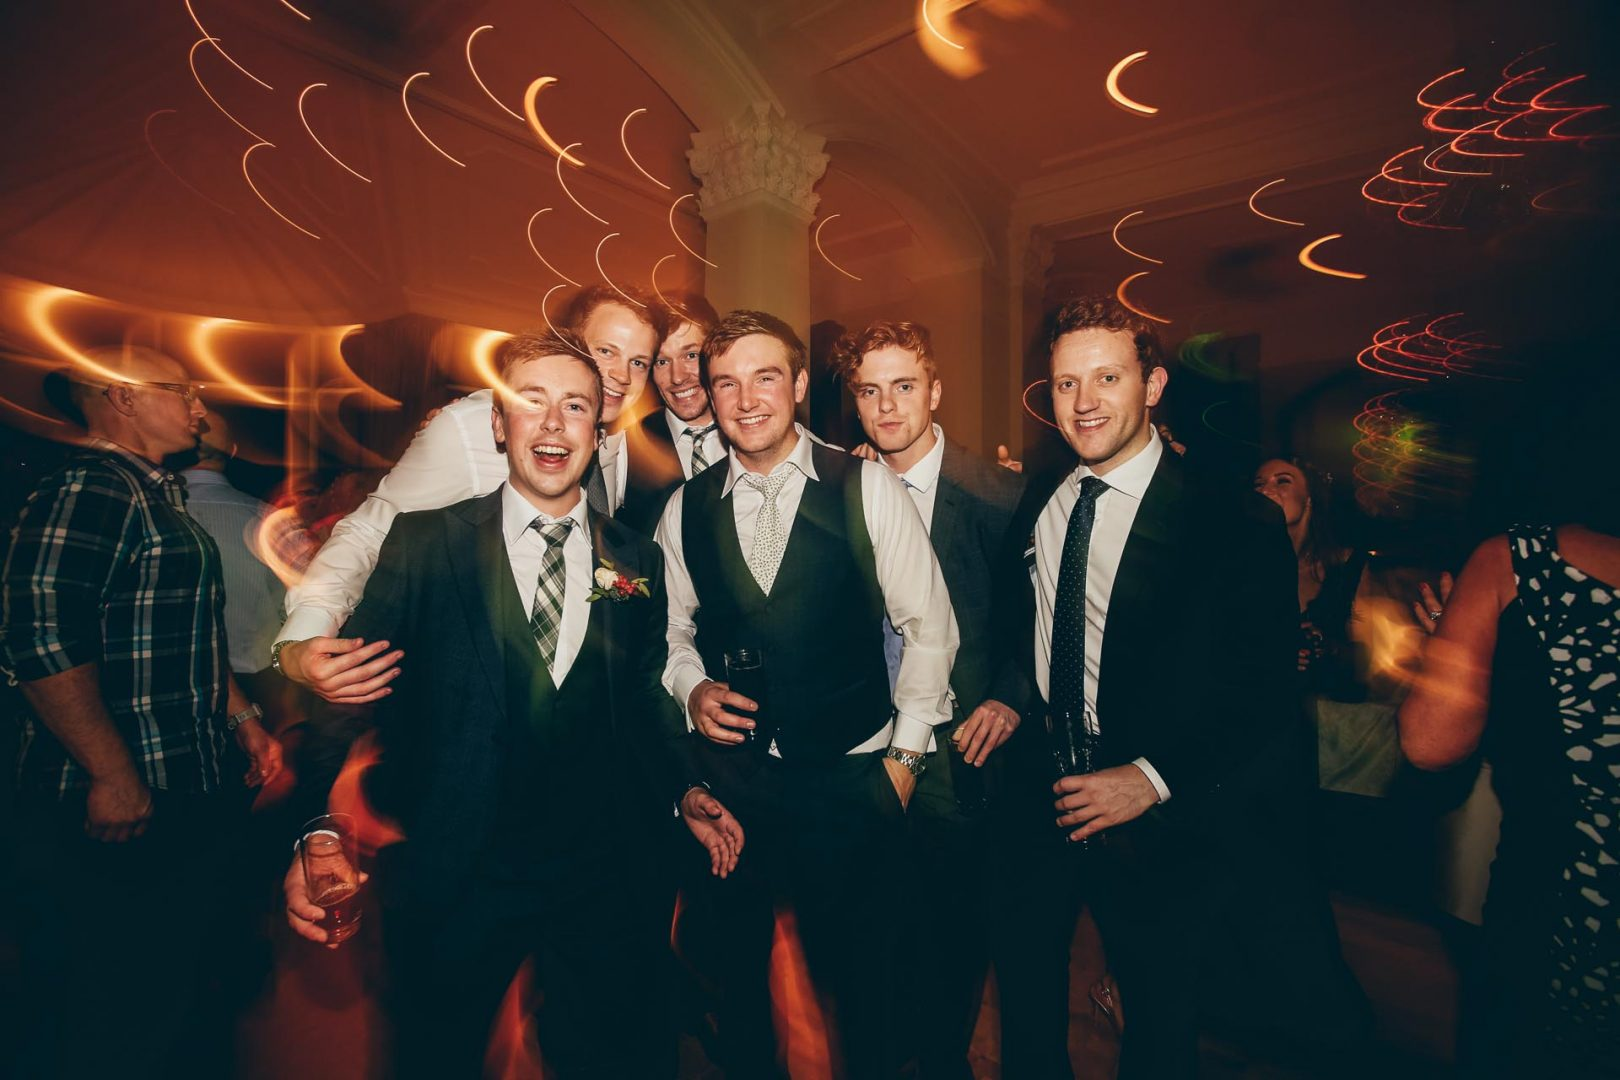 SARAH_GRAY_PHOTOGRAPHY_WEDDING_NORTHERN_IRELAND_SLIEVE_DONARD_GILNAHIRK_NEWCASTLE-4